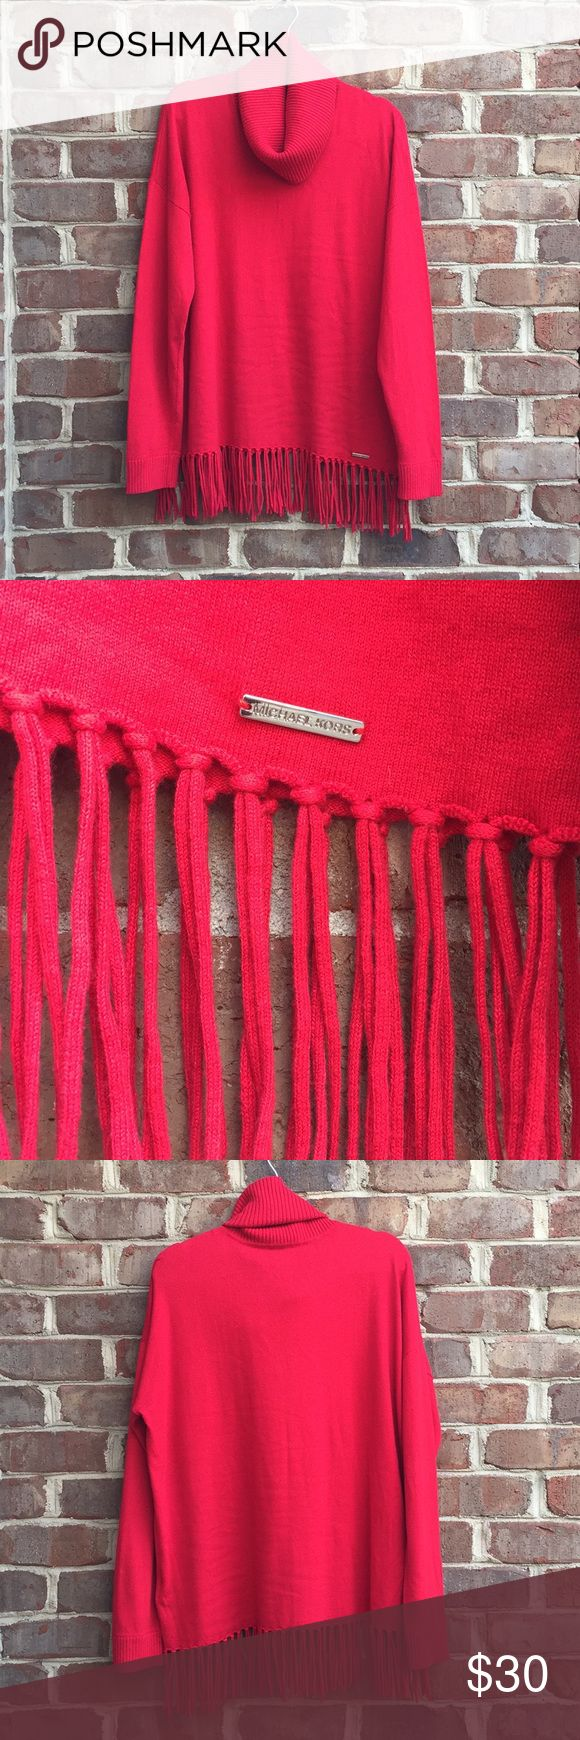 Women's Michael Kors sweater 🎄 Women's Michael Kors sweater. Red with tassels. Excellent condition! Cowl neck. Size XL. 🎄 Free gift if you spend $50 or more on listings with a Christmas tree emoji! Michael Kors Tops